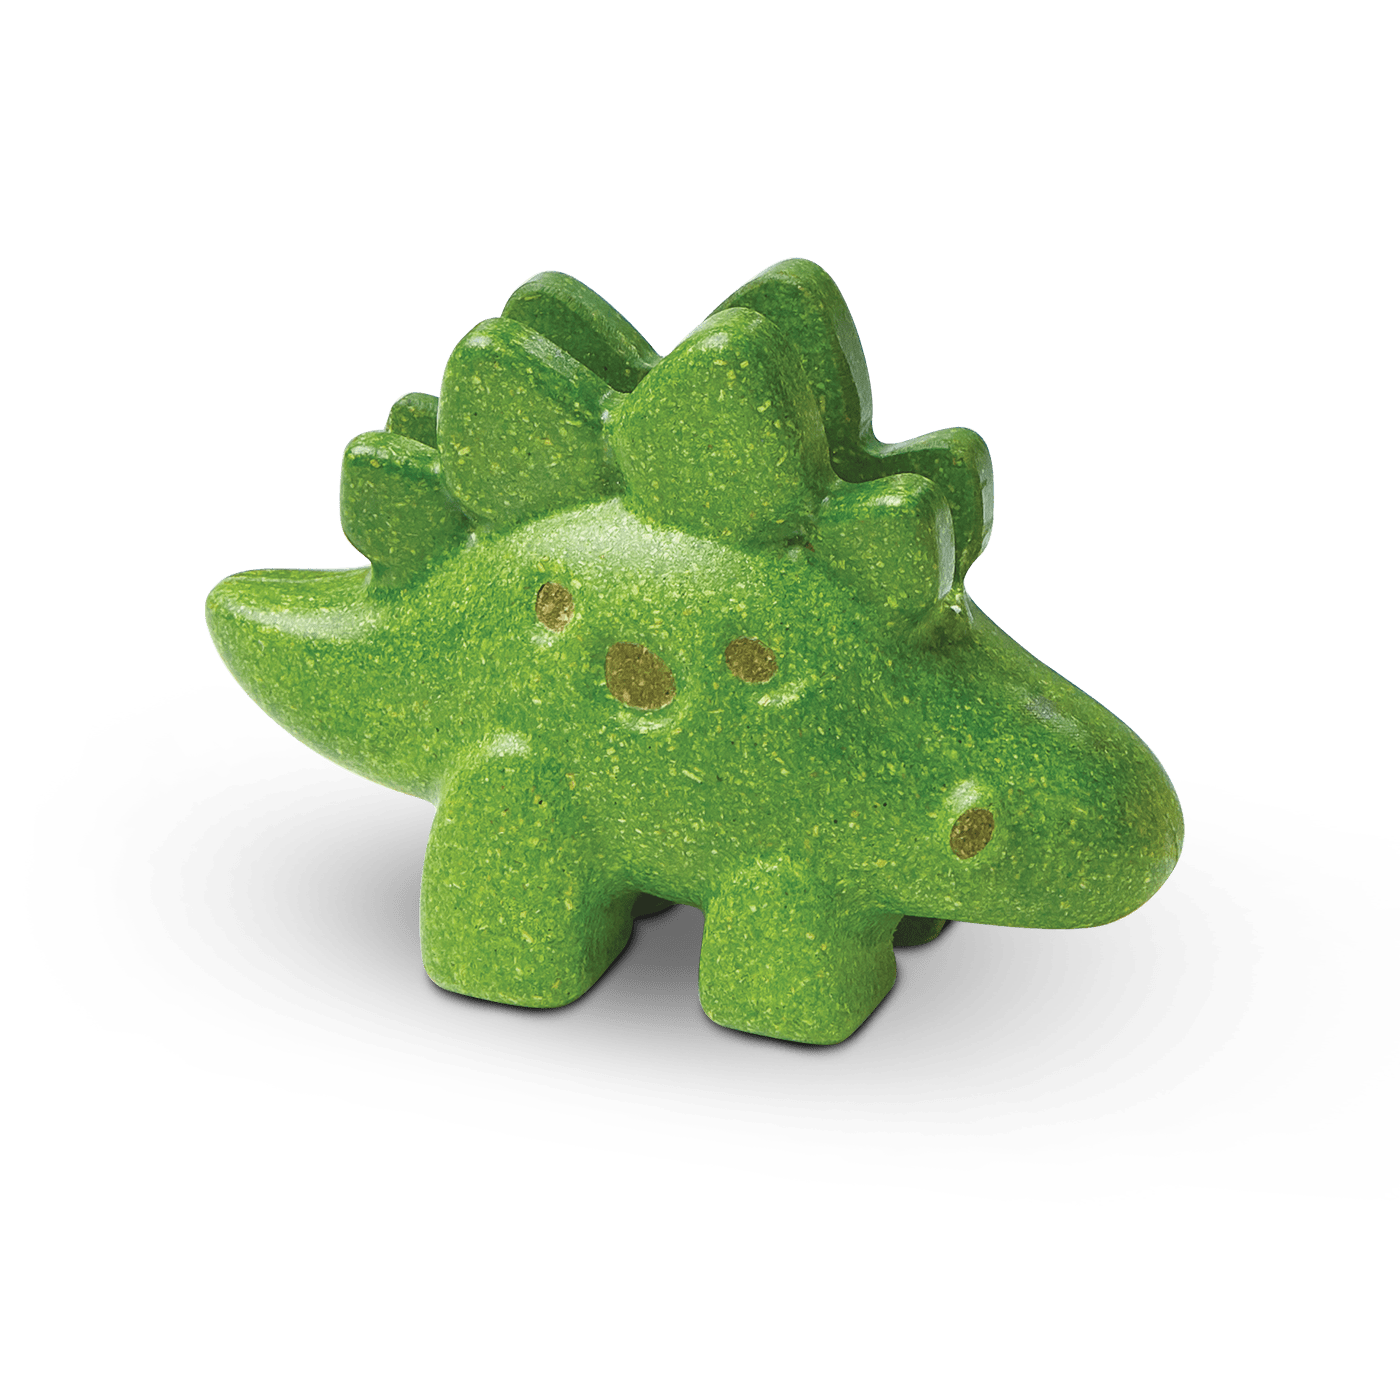 6131_PlanToys_STEGOSAURUS_Pretend_Play_Imagination_Social_Language_and_Communications_Fine_Motor_Emotion_Tactile_12m_Wooden_toys_Education_toys_Safety_Toys_Non-toxic_0.png